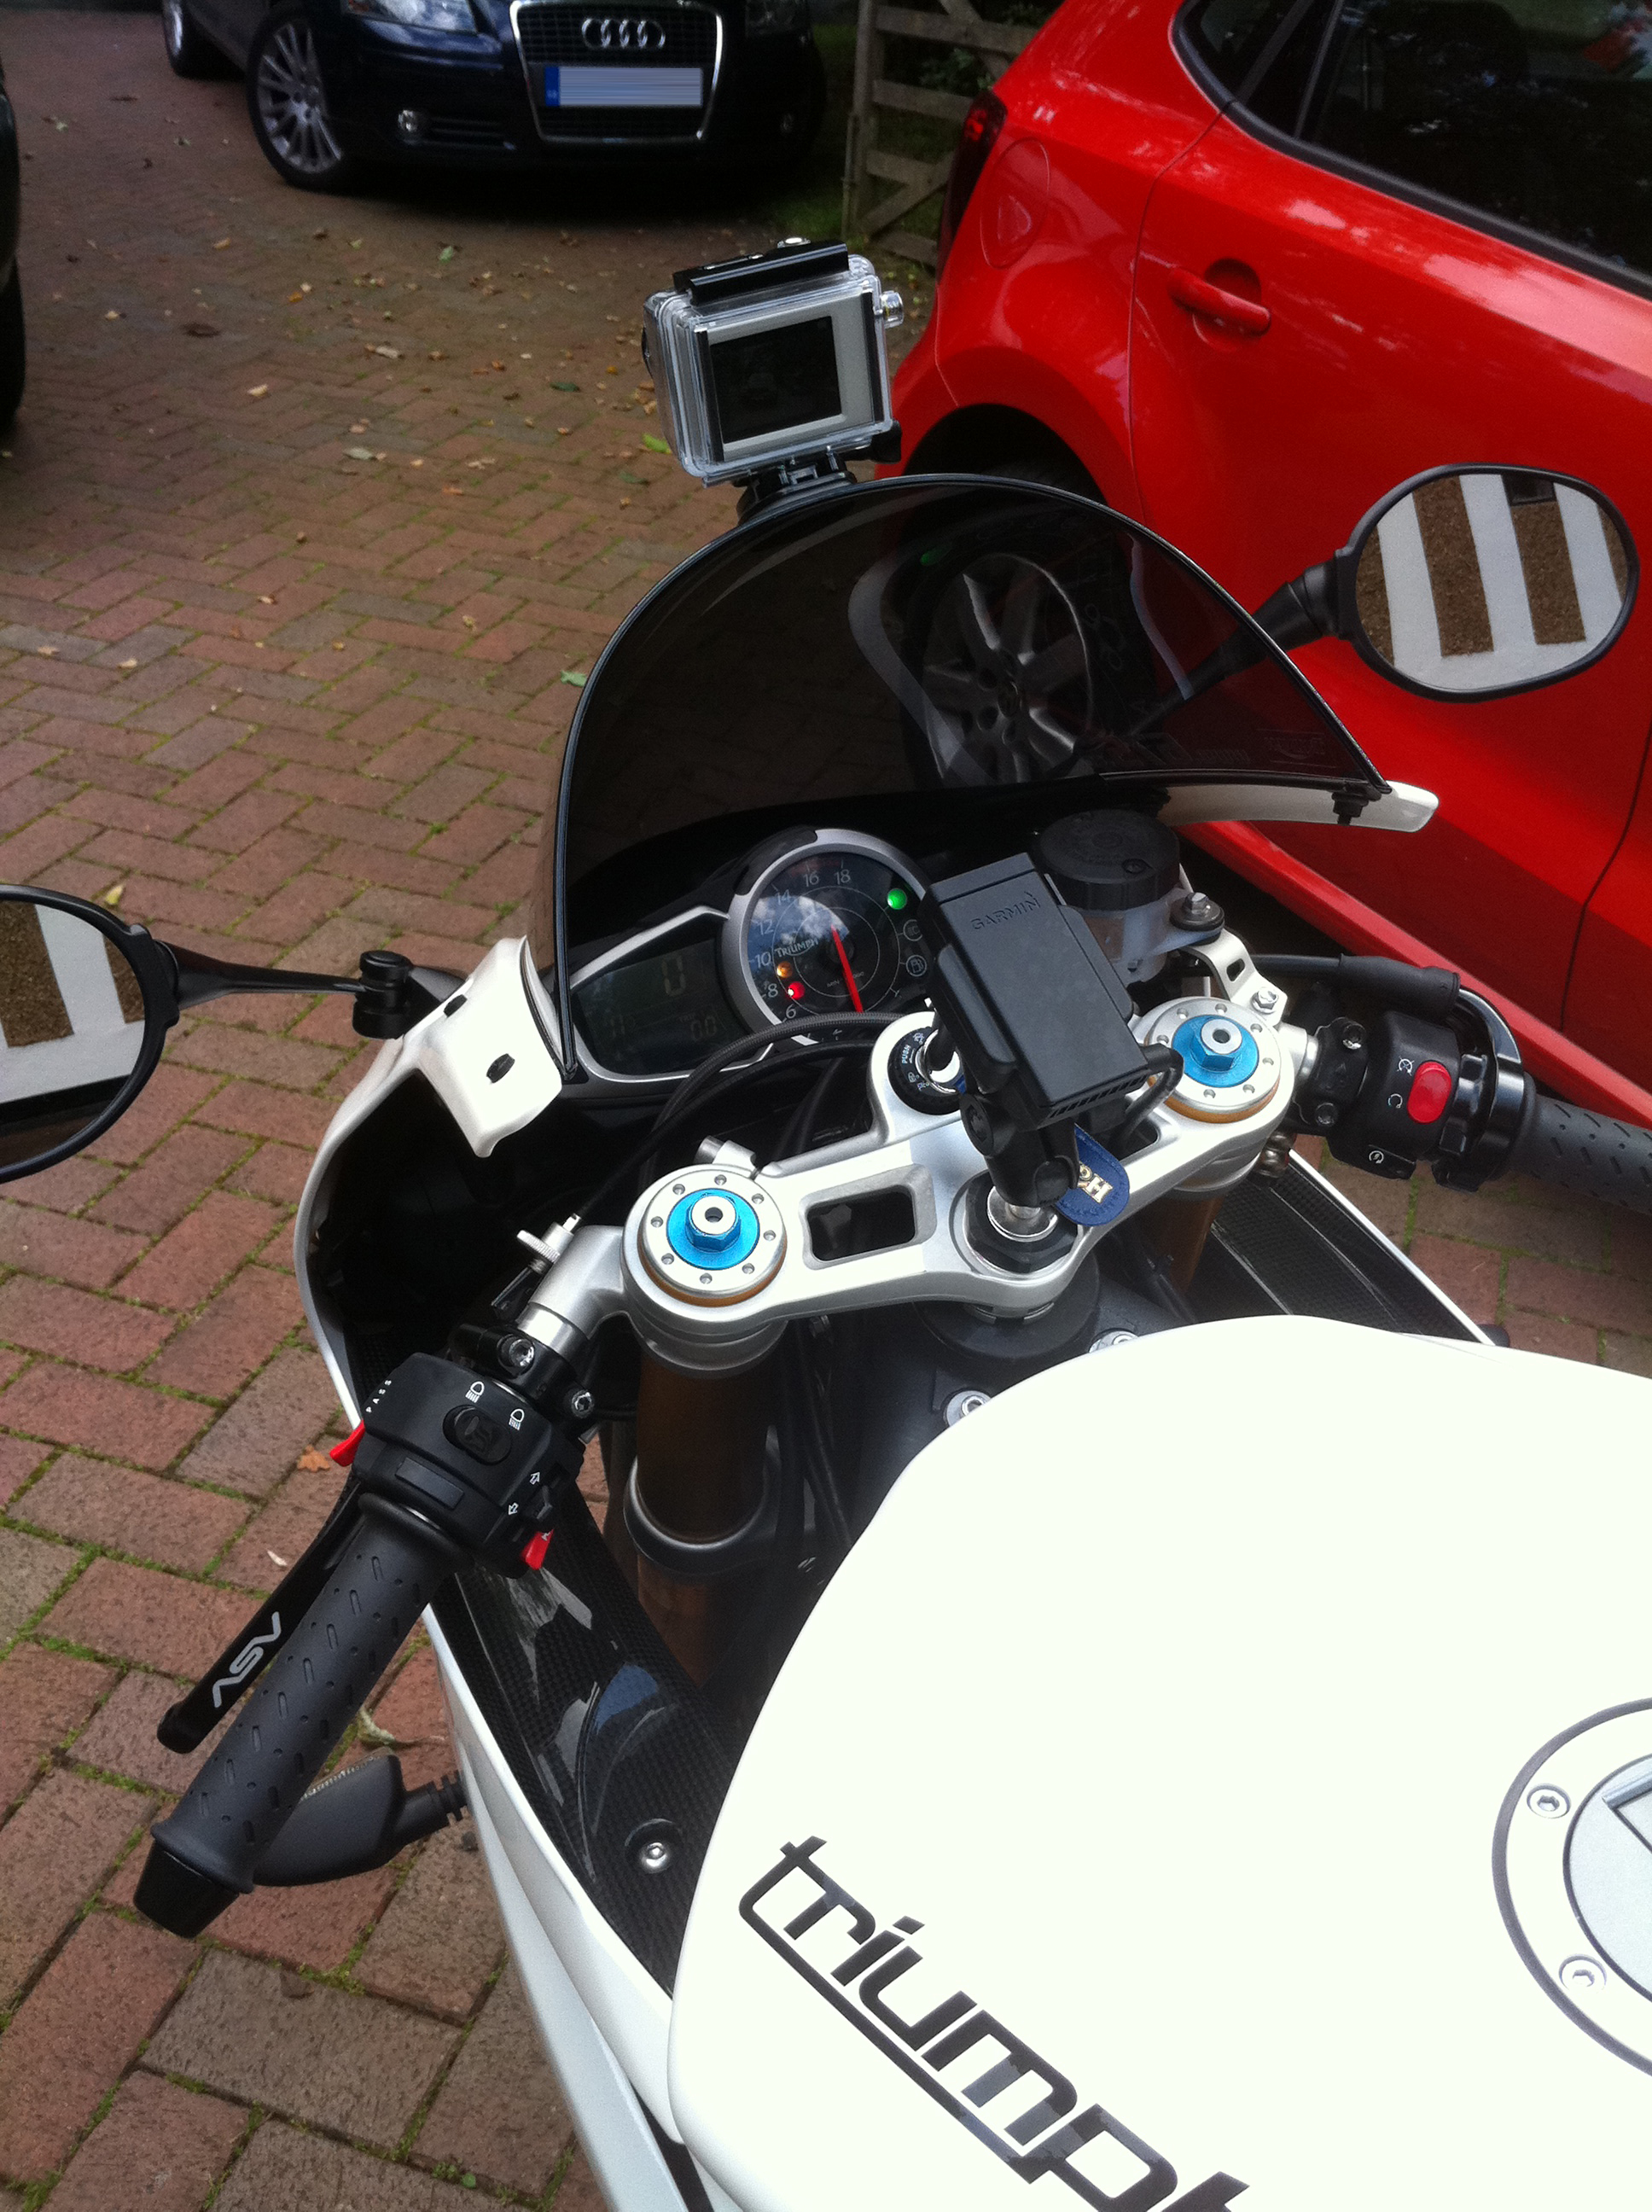 Gopro Roll Bar Mount >> GoPro - Where is yours mounted? | 675.cc • Triumph 675 Forum